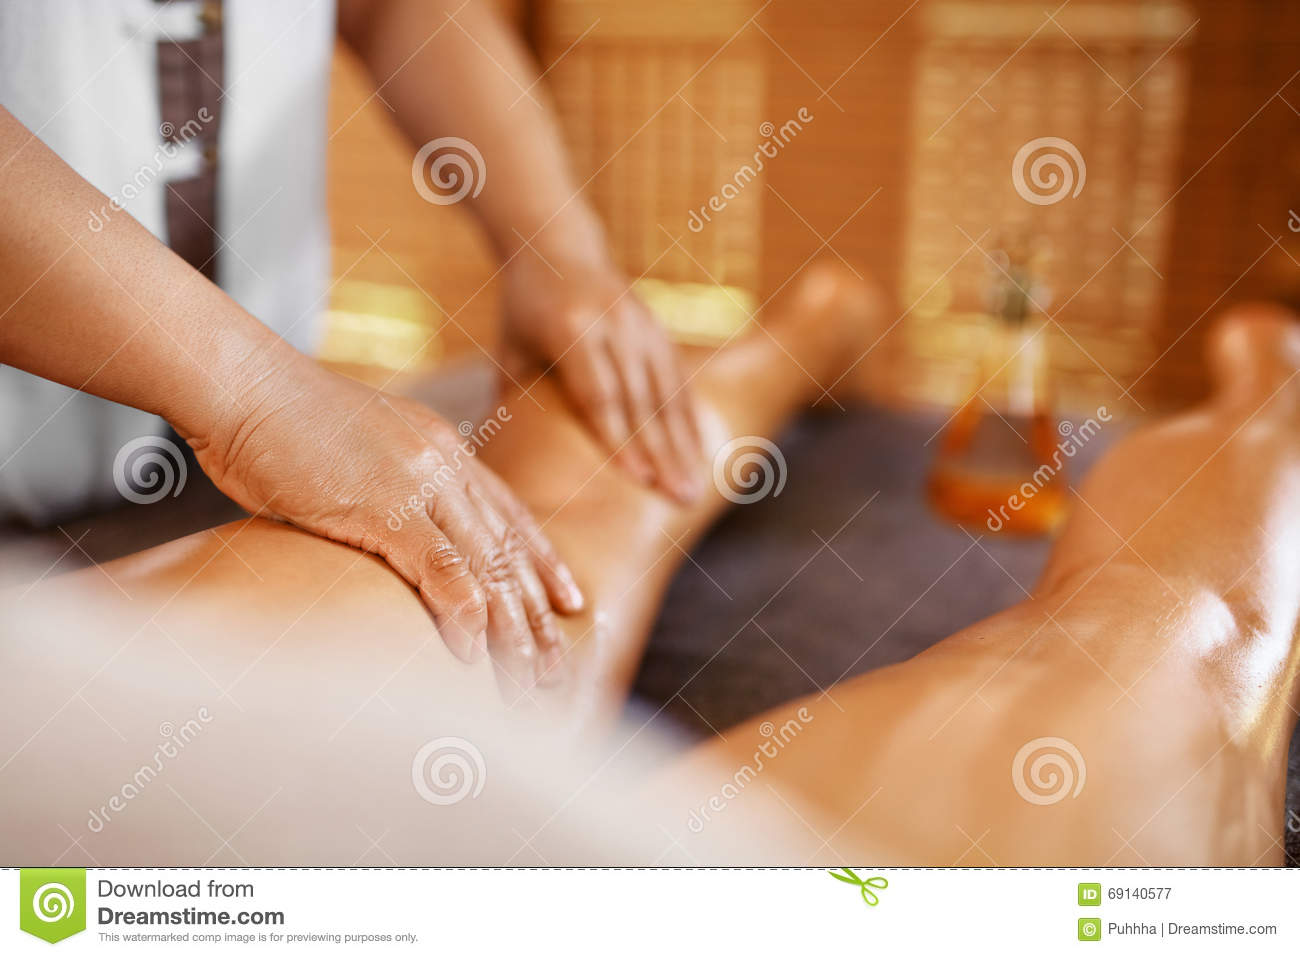 Full body sexy massage